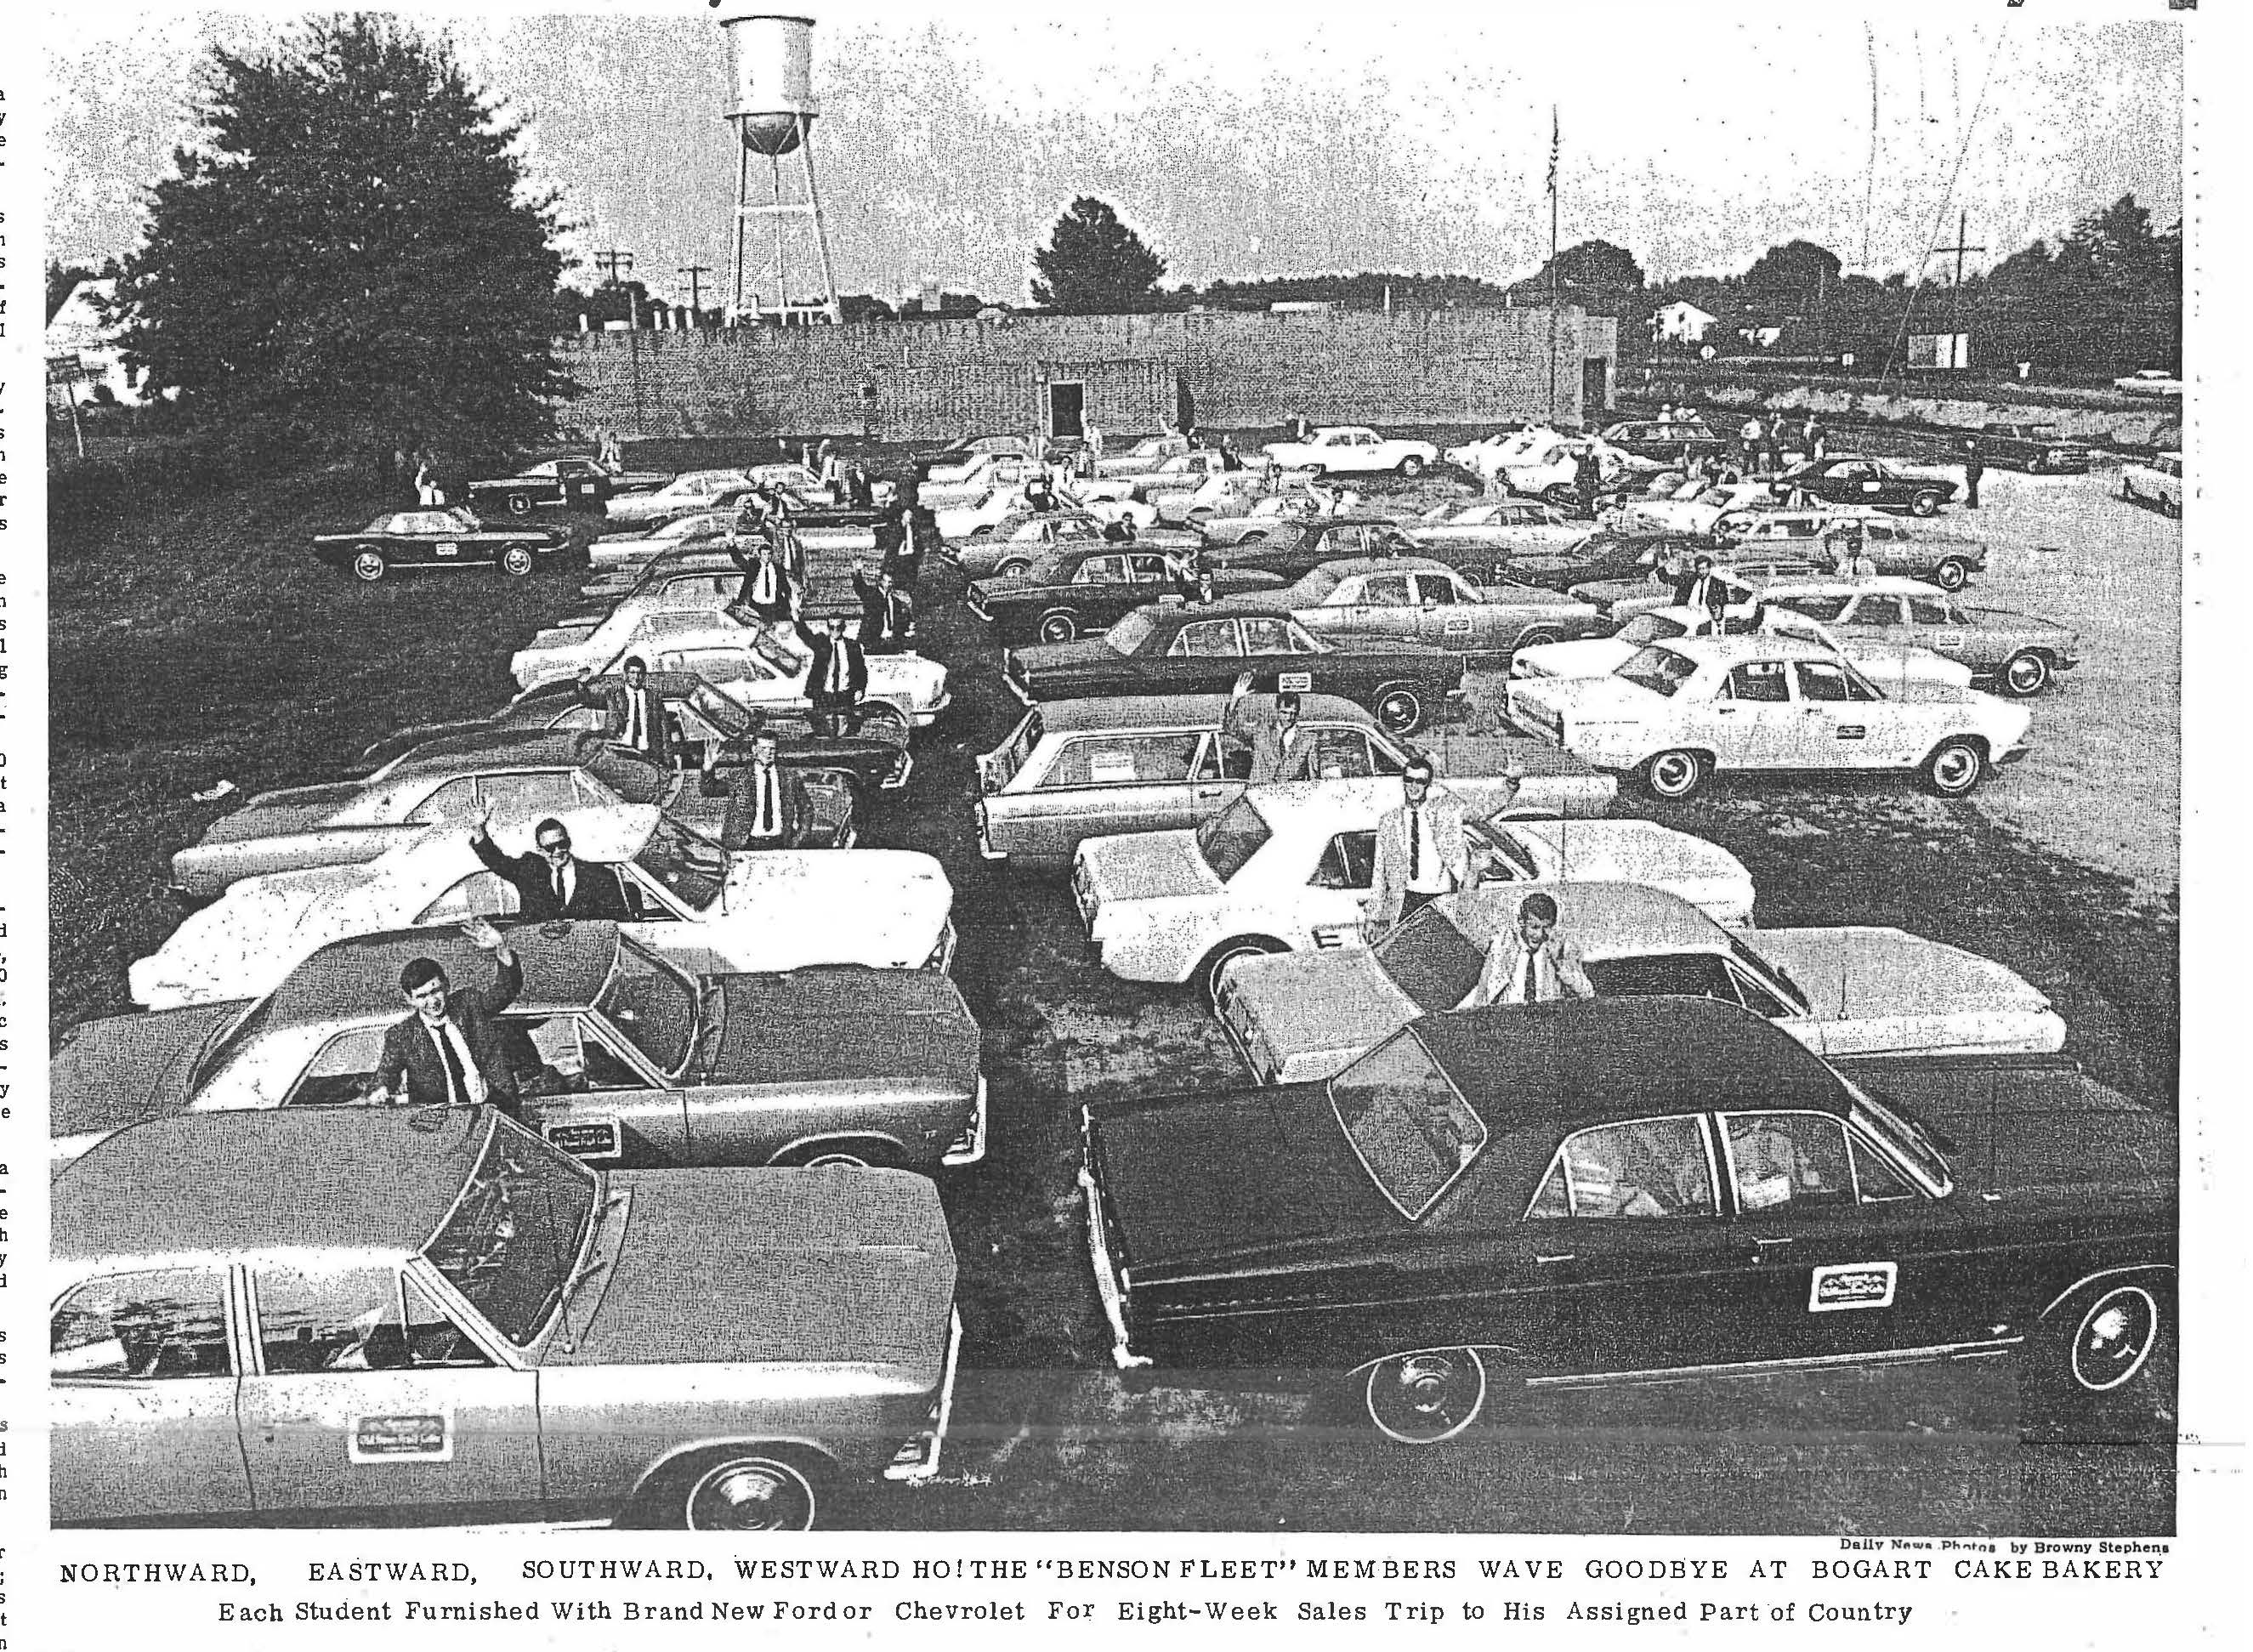 Athens Daily News Photo of Benson Fleet in 1966